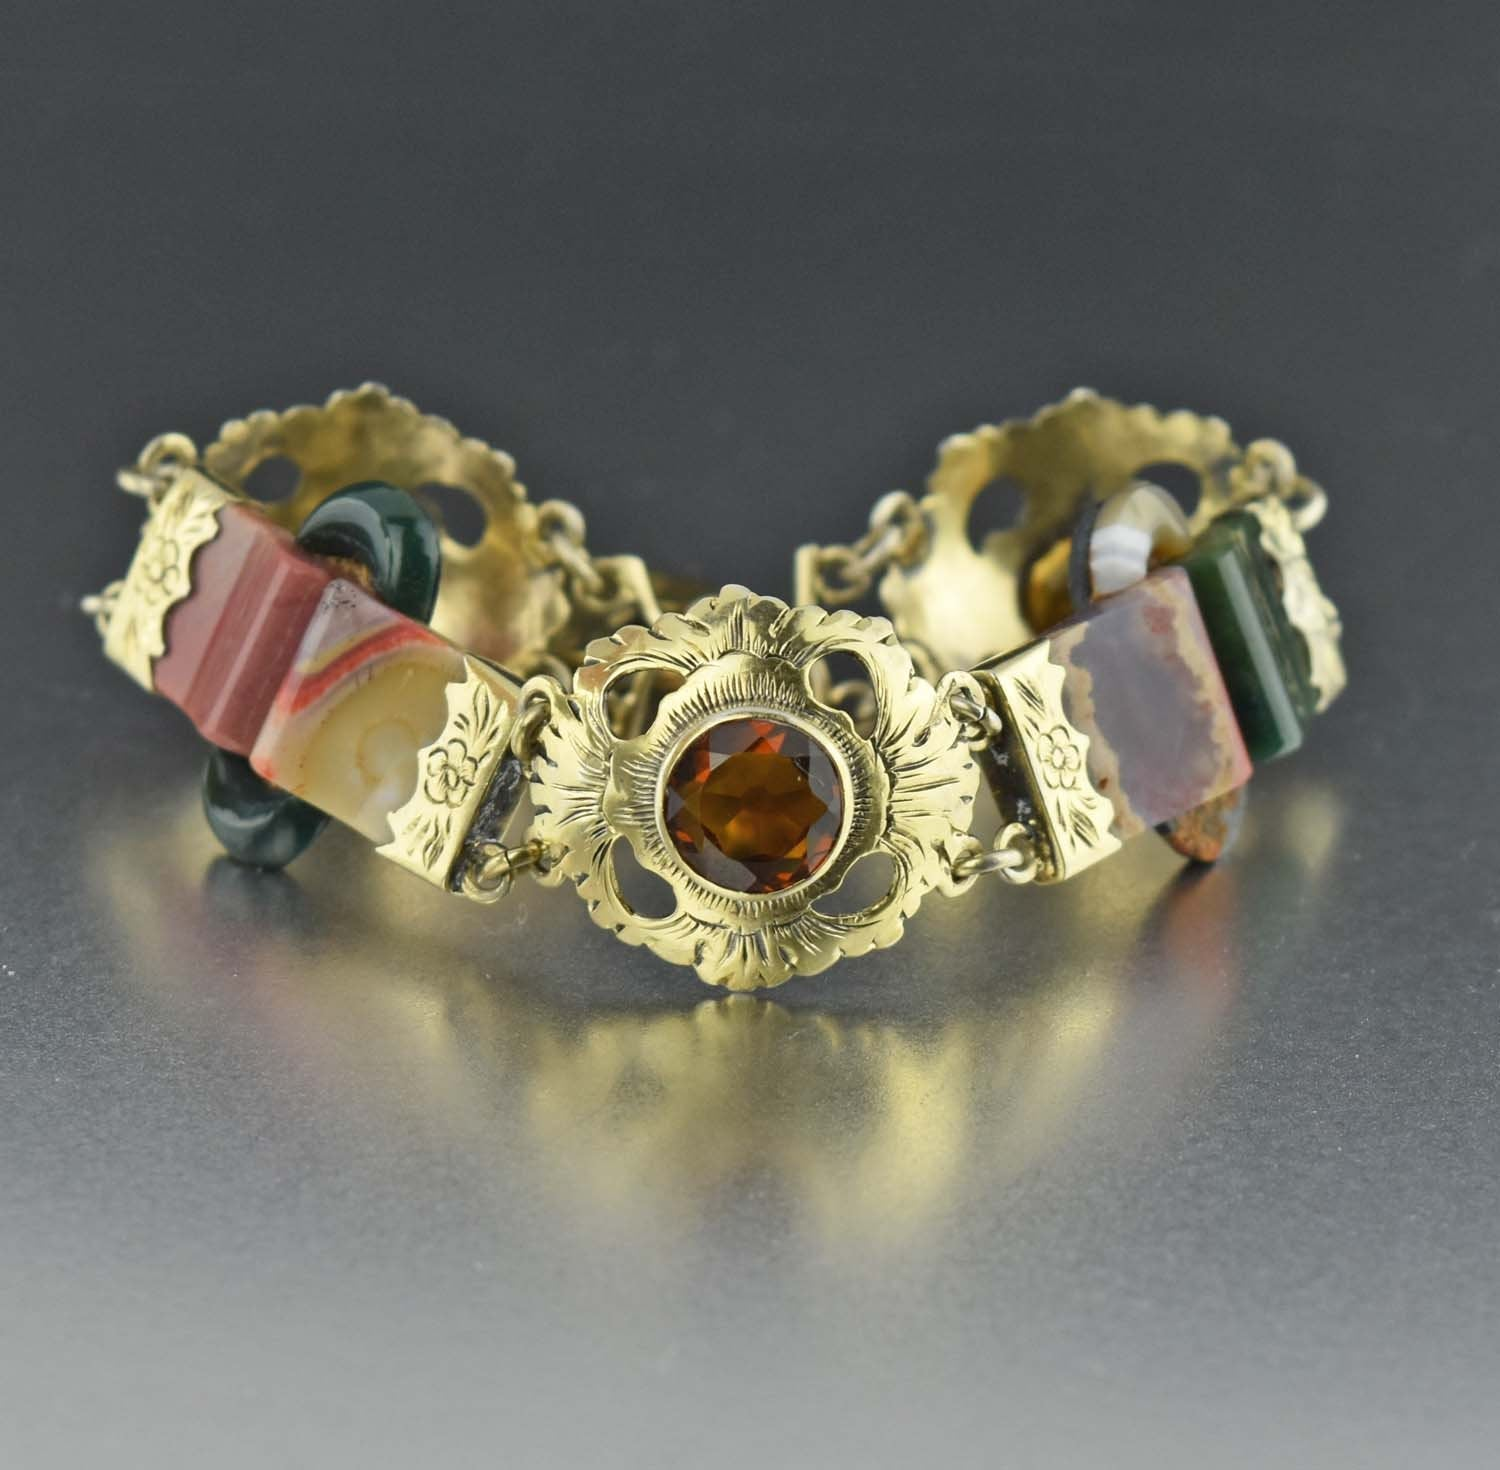 ELEGANT & REFINED ANTIQUE BRACELETS!